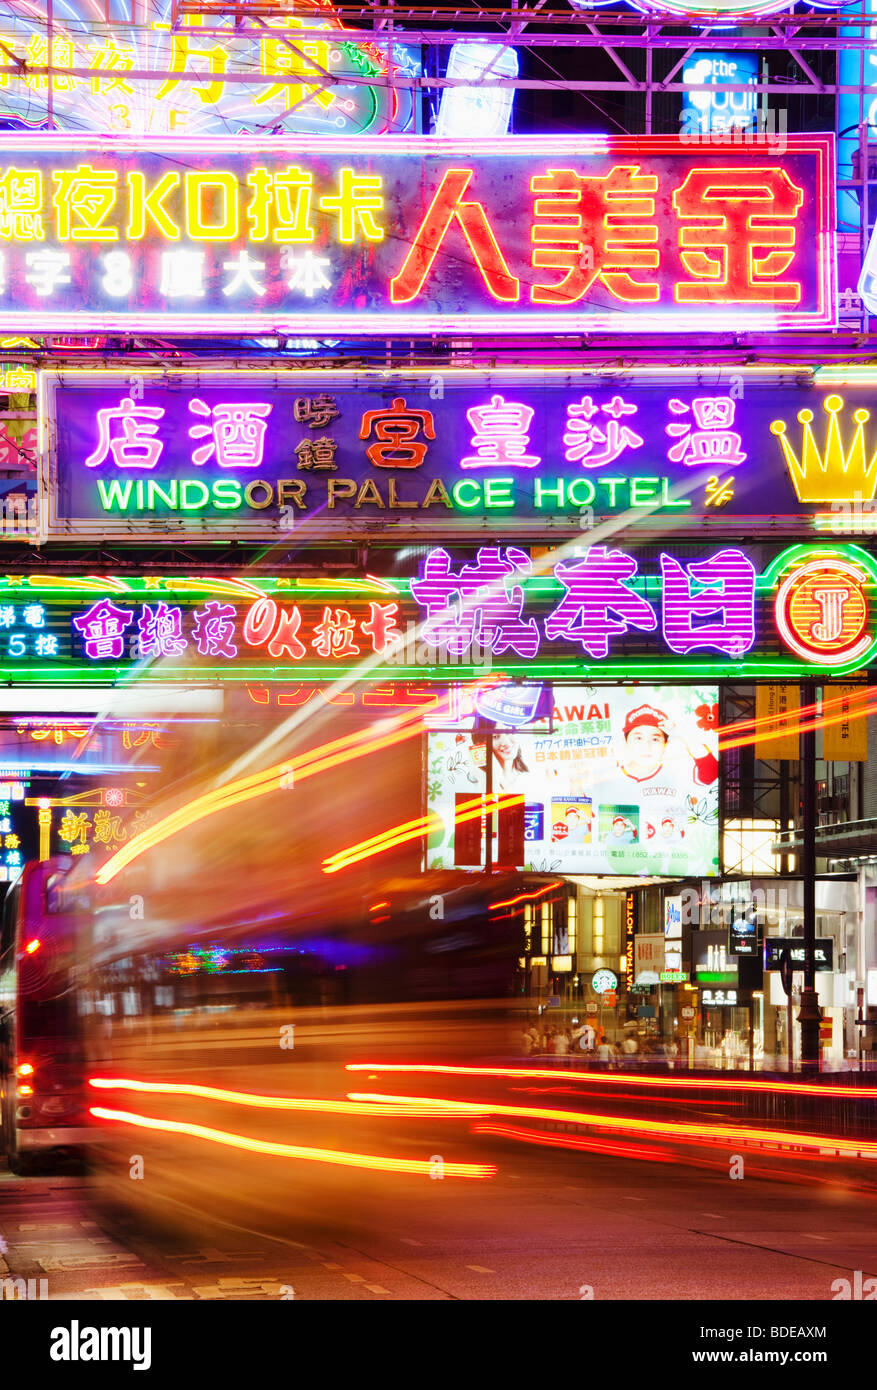 Neon signs and bus light trail in Tsim Sha Tsui, Kowloon, Hong Kong, China. - Stock Image